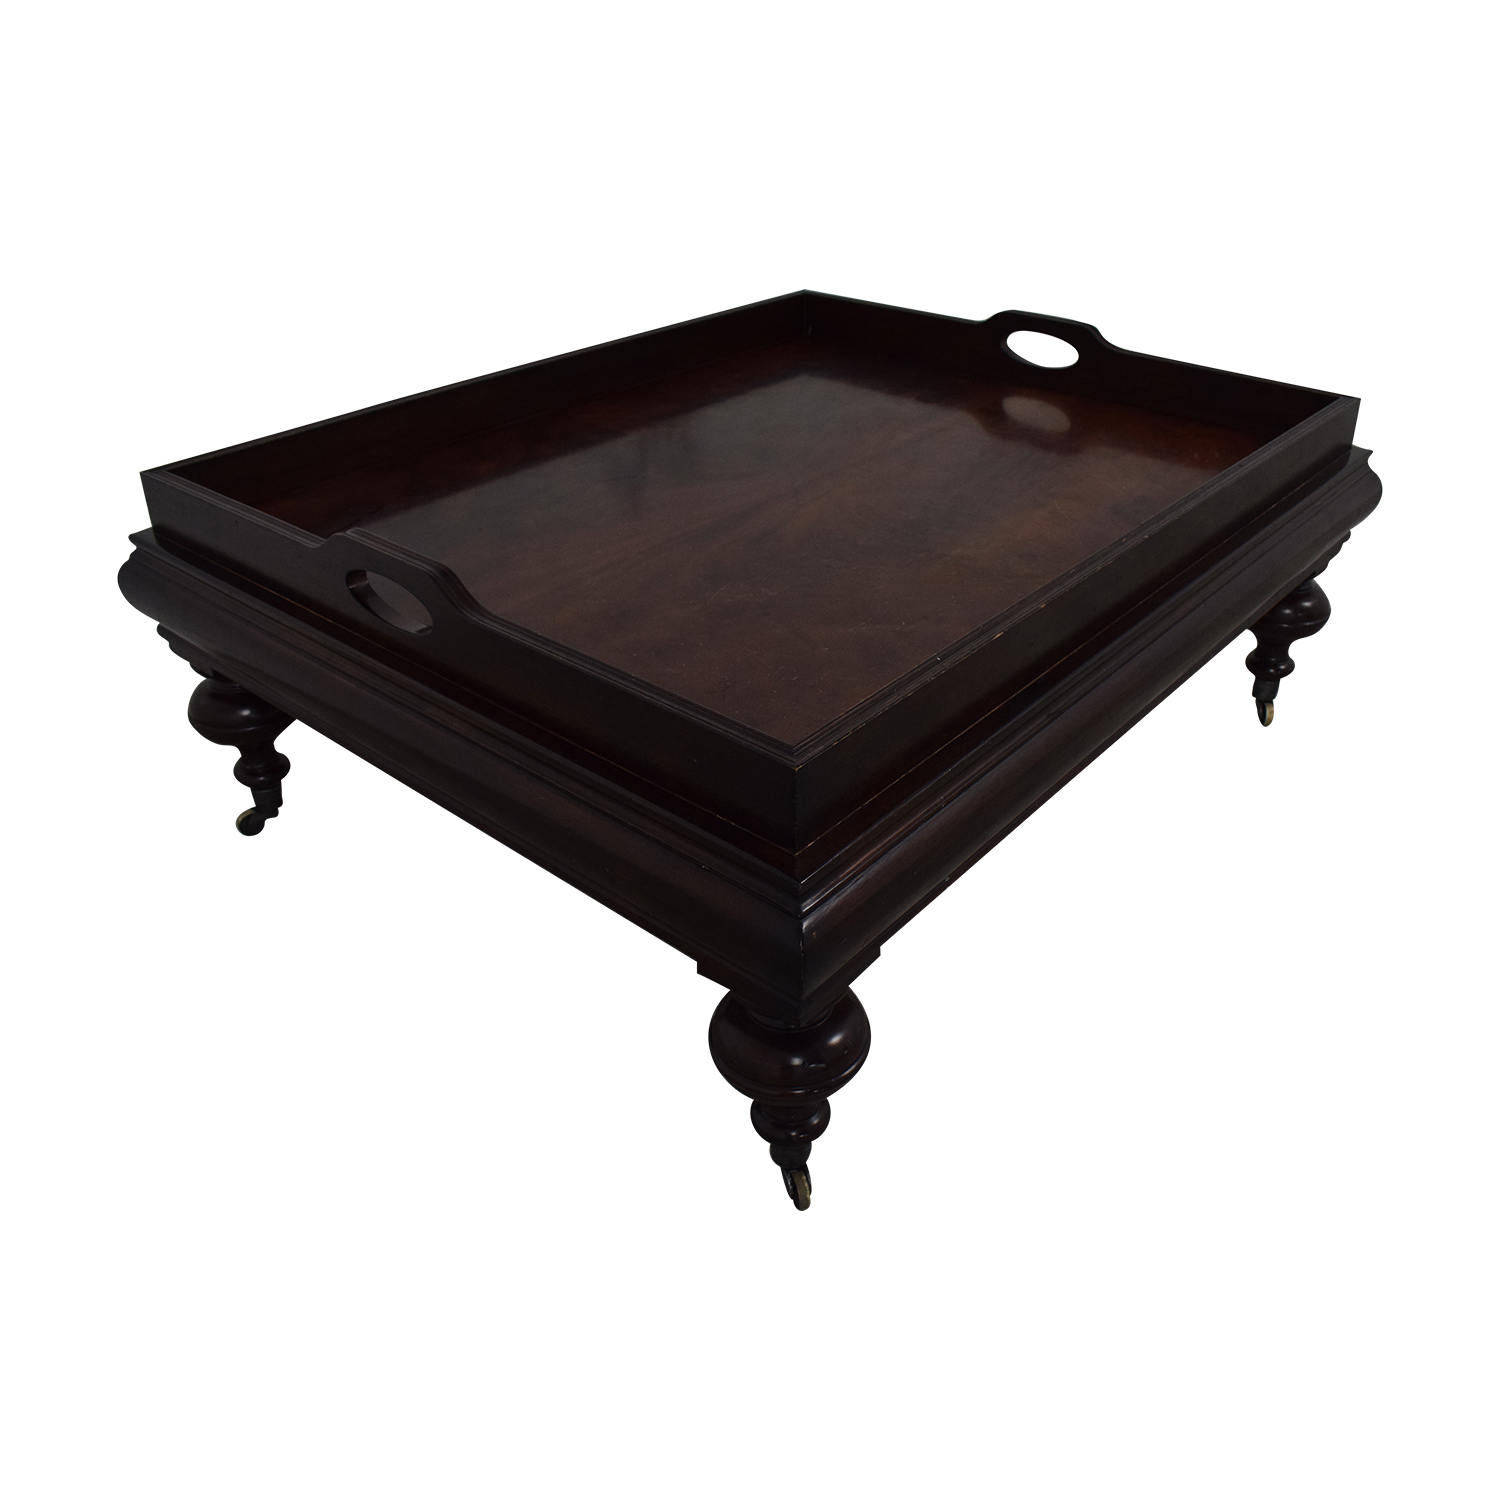 Ralph Lauren Home Ralph Lauren Home Coffee Table on sale